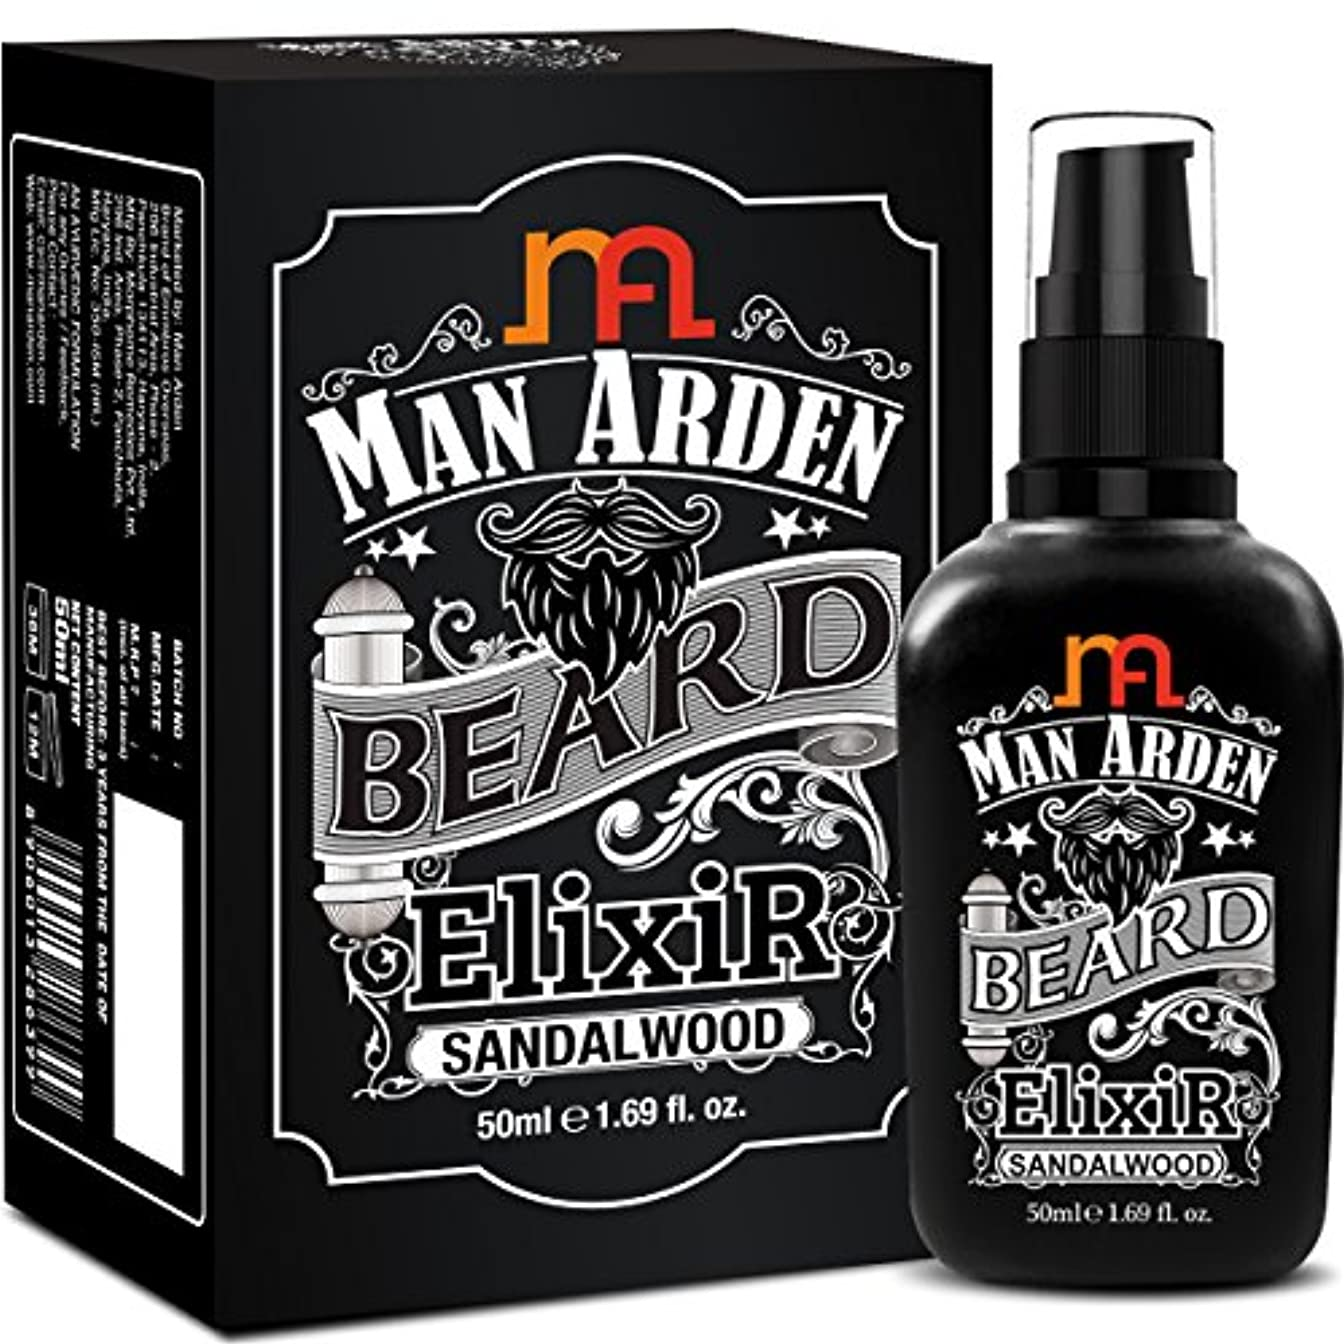 美徳将来の可動Man Arden Beard Elixir Oil 50ml (Sandalwood) - 7 Oils Blend For Beard Repair, Growth & Nourishment8906013286399